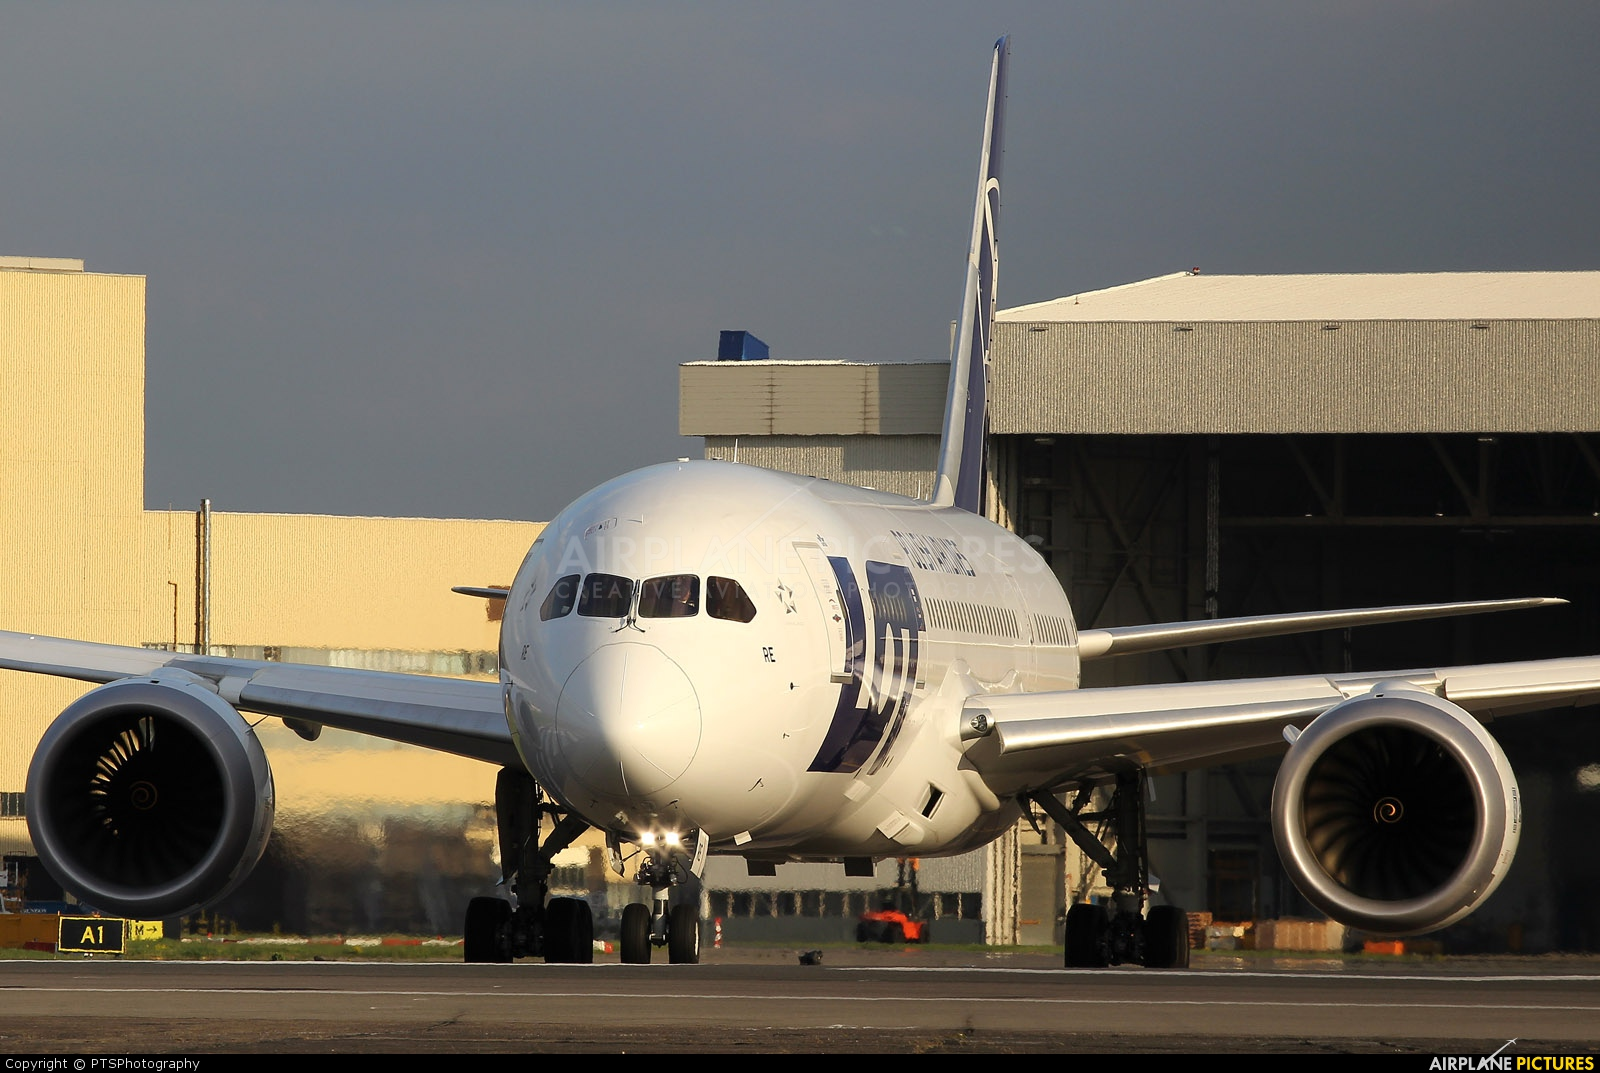 LOT - Polish Airlines SP-LRE aircraft at London - Heathrow